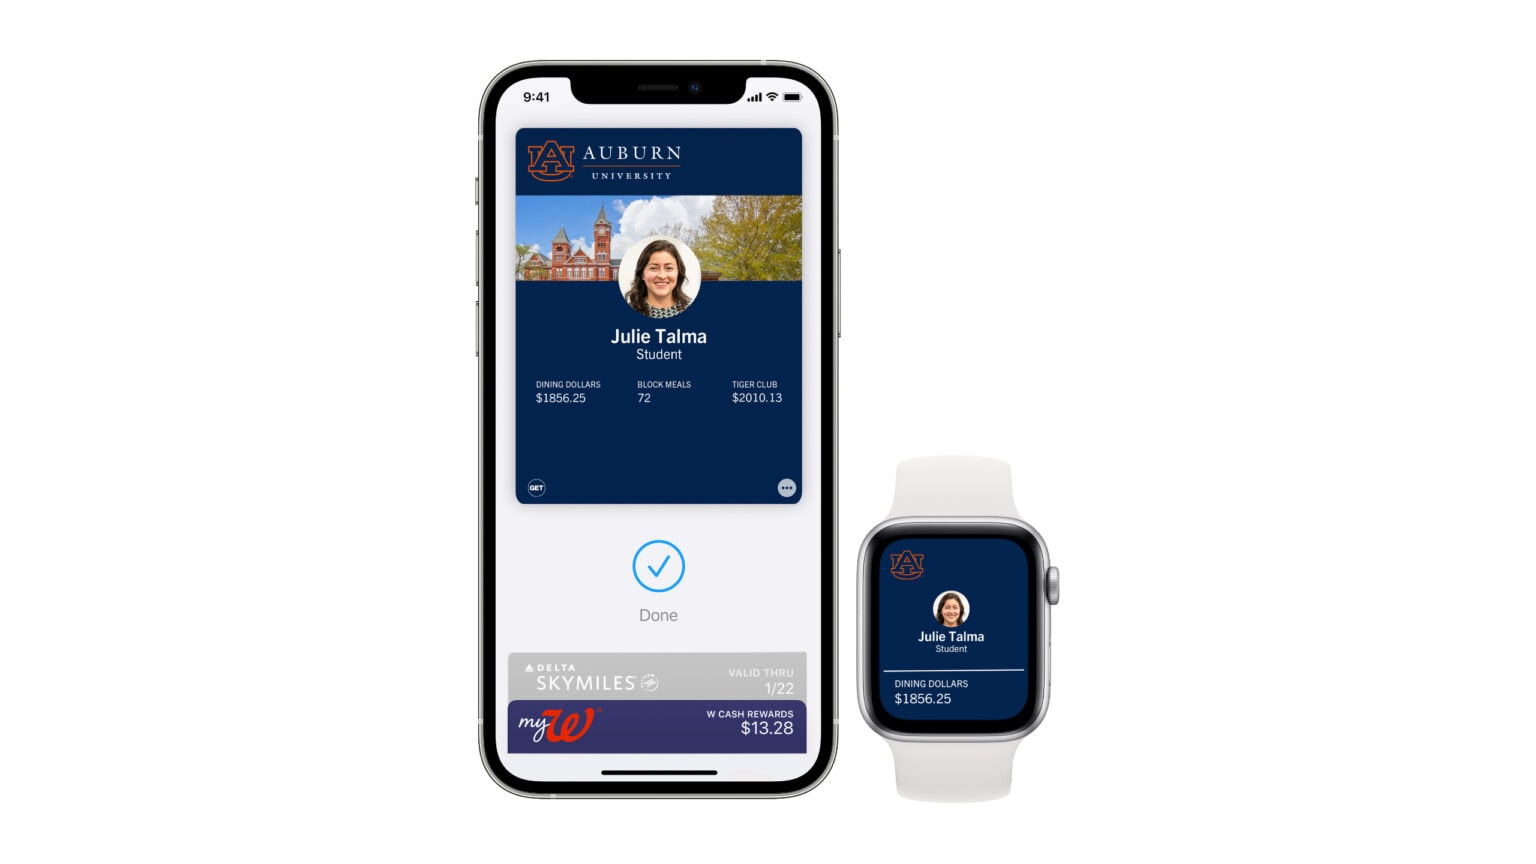 Student IDs on iPhone and Apple Watch